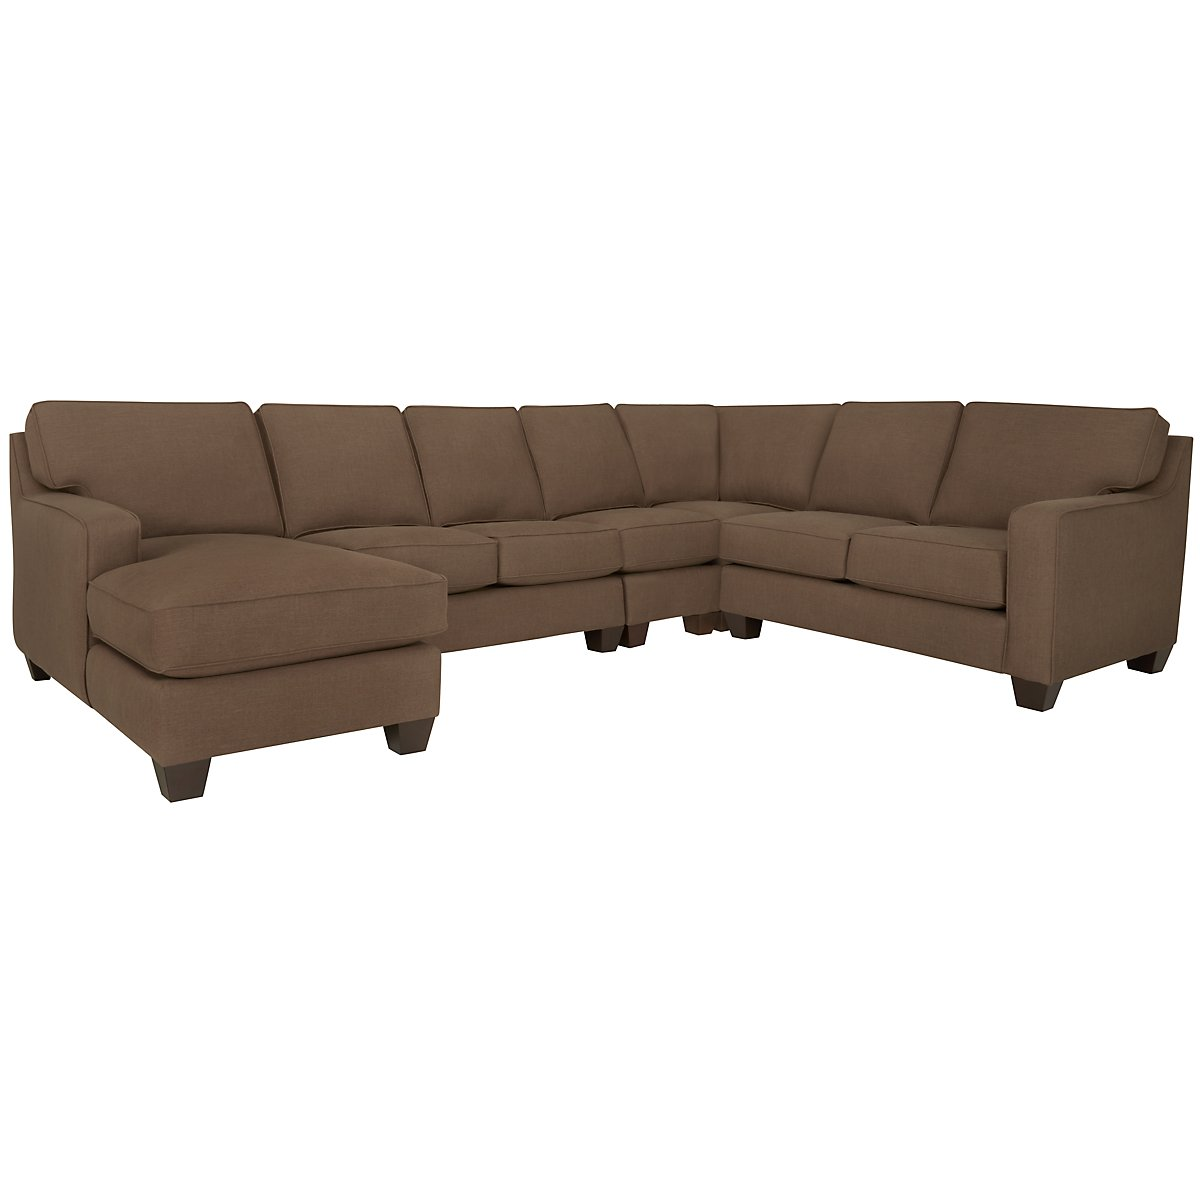 City furniture york dk brown fabric large left chaise for Chaise york